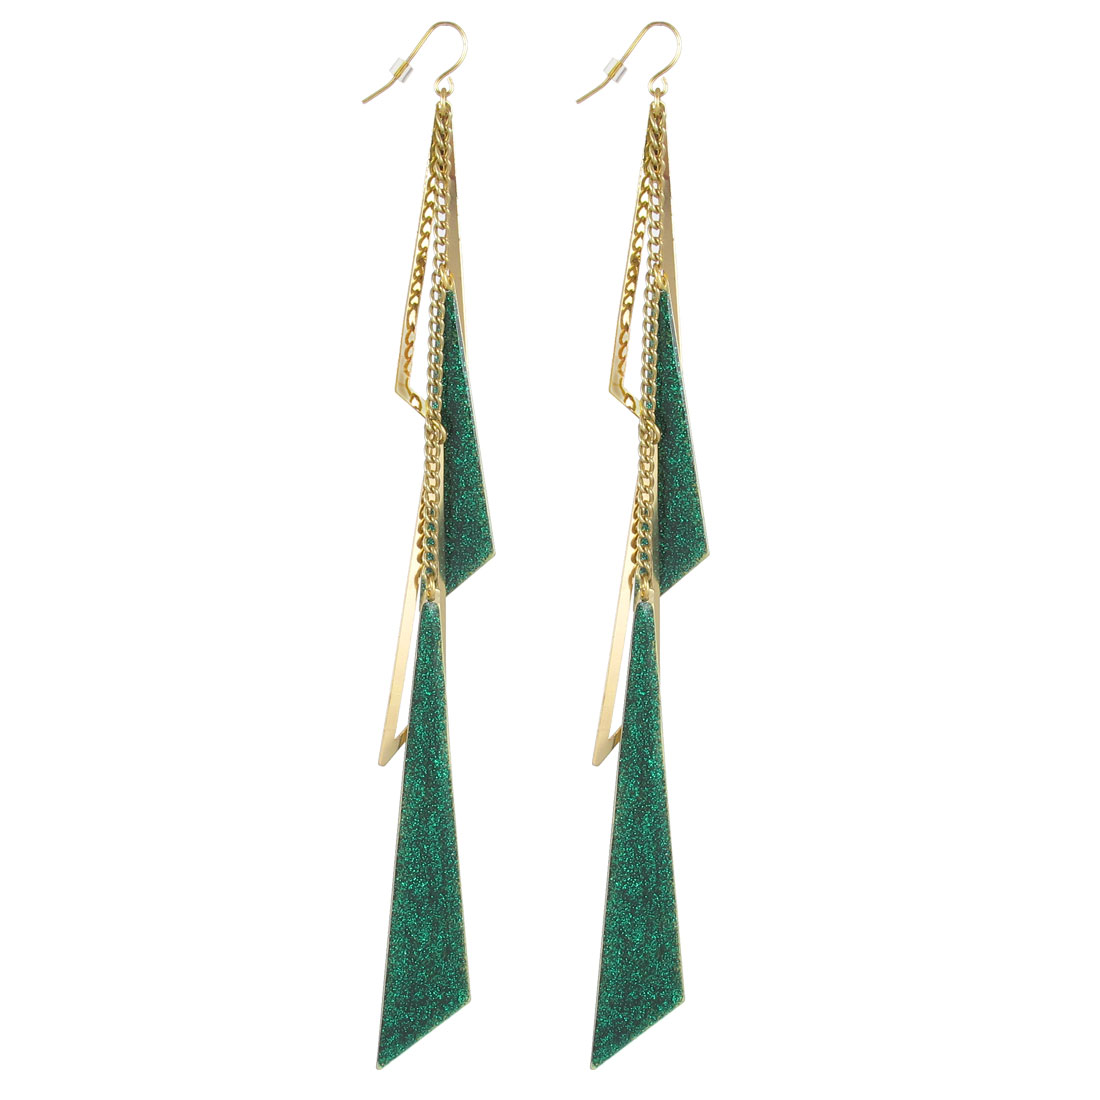 "7.3"" Length Copper Tone Green Metal Plastic Triangle Shape Glittery Smooth Surface Dangling Pendants Hook Earrings Earbobs Pair for Lady Women"